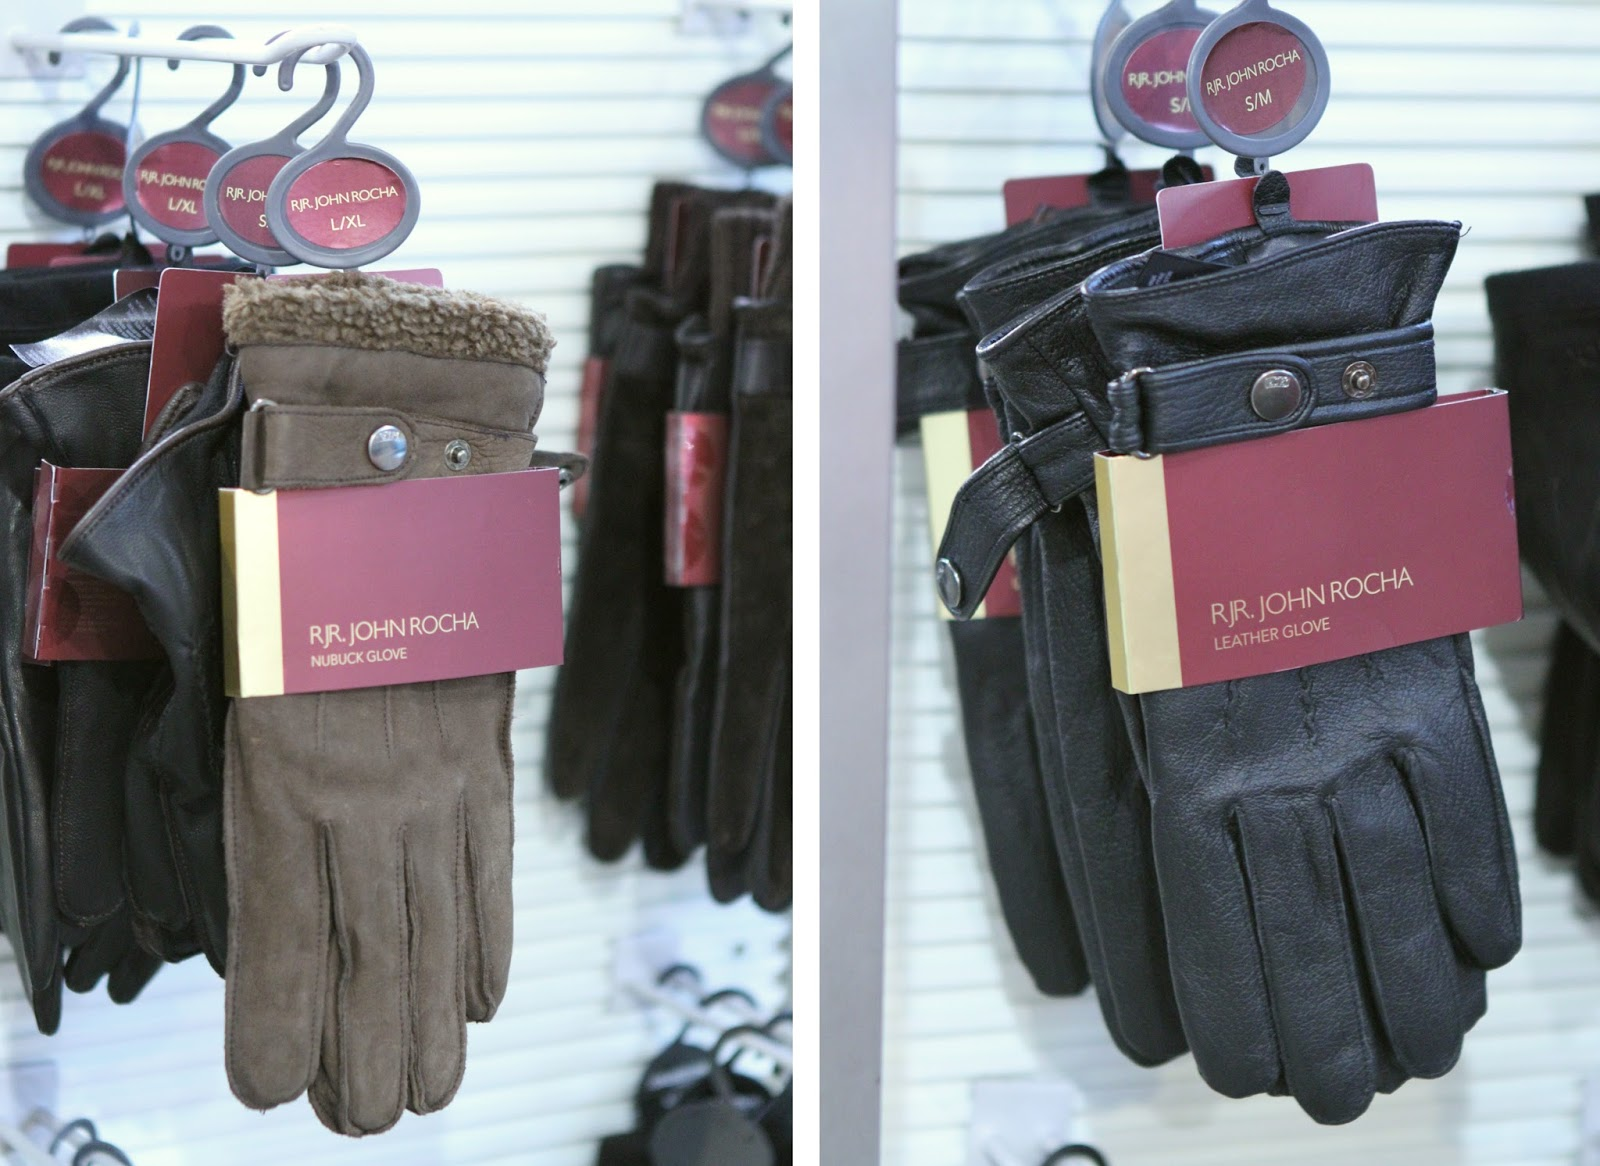 Mens leather gloves at debenhams - Ok The Next Pick Is One For The Guys And The Girls In A Way Hear Me Out On This One One Of The First Things I Look At On A Man